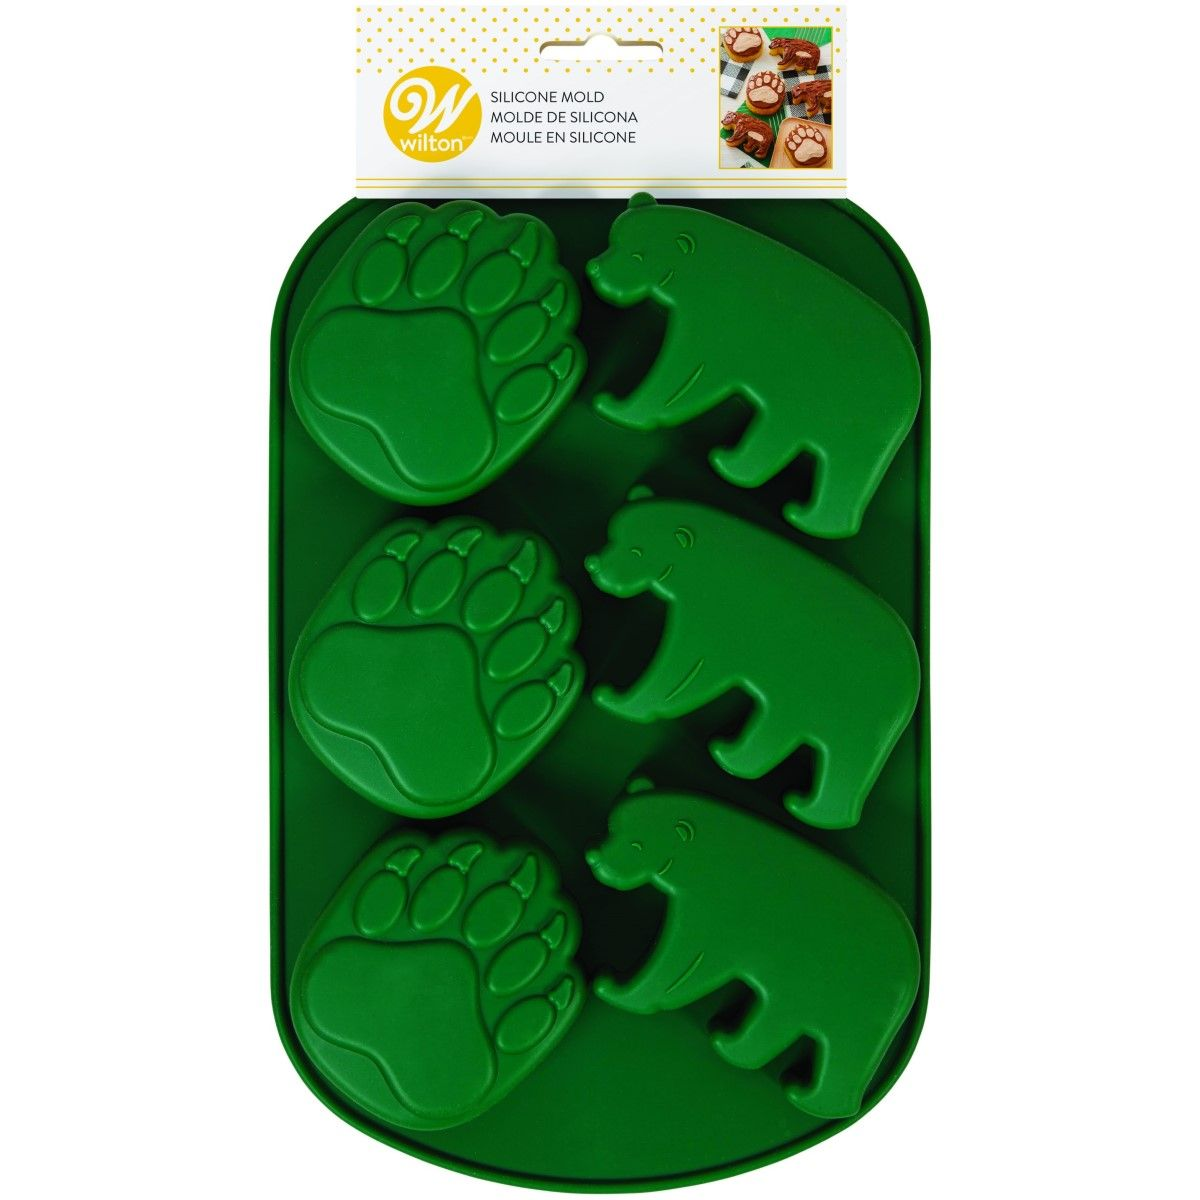 moule silicone ours foret wilton